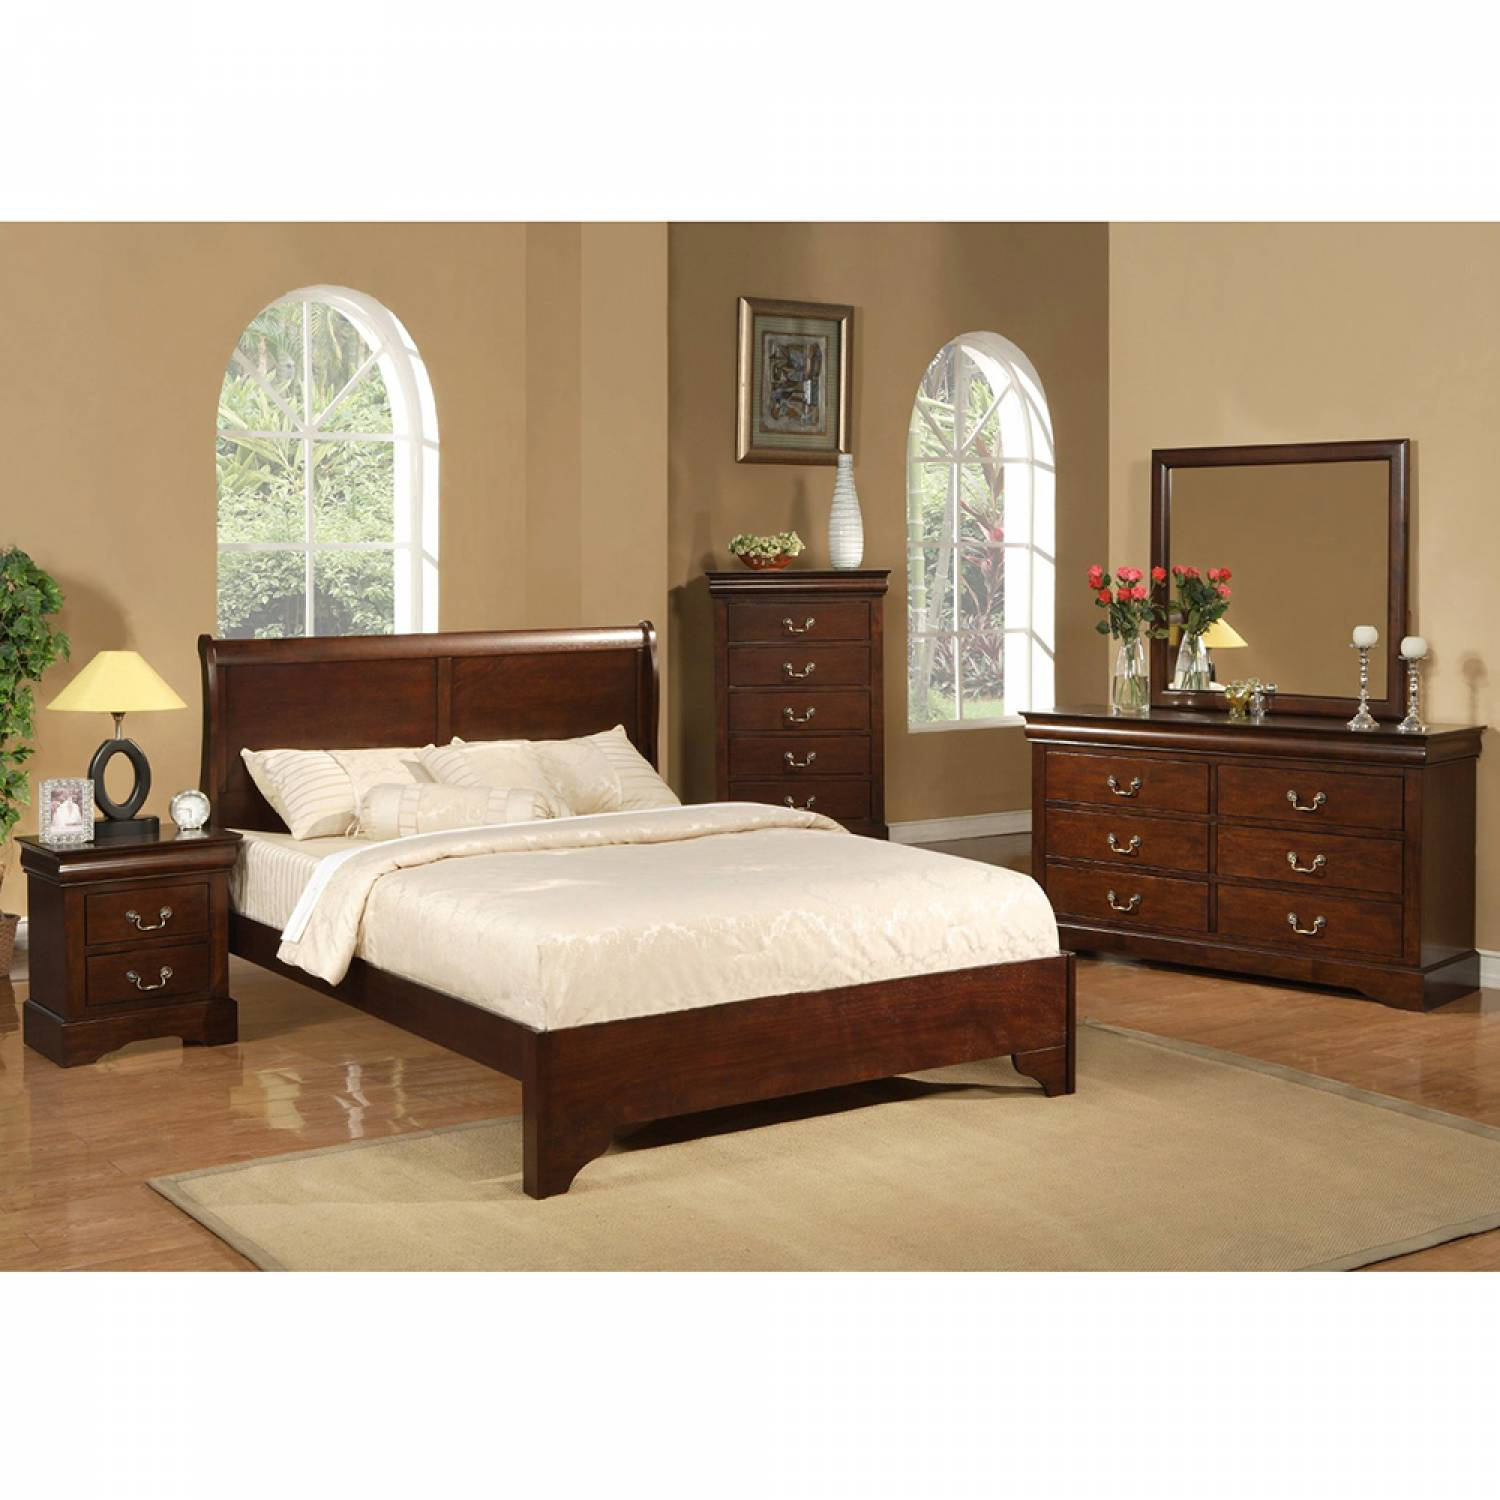 Cheap Beautiful Furniture: 2200 Alpine Furniture 2200Q West Haven 4PC SETS Queen Low